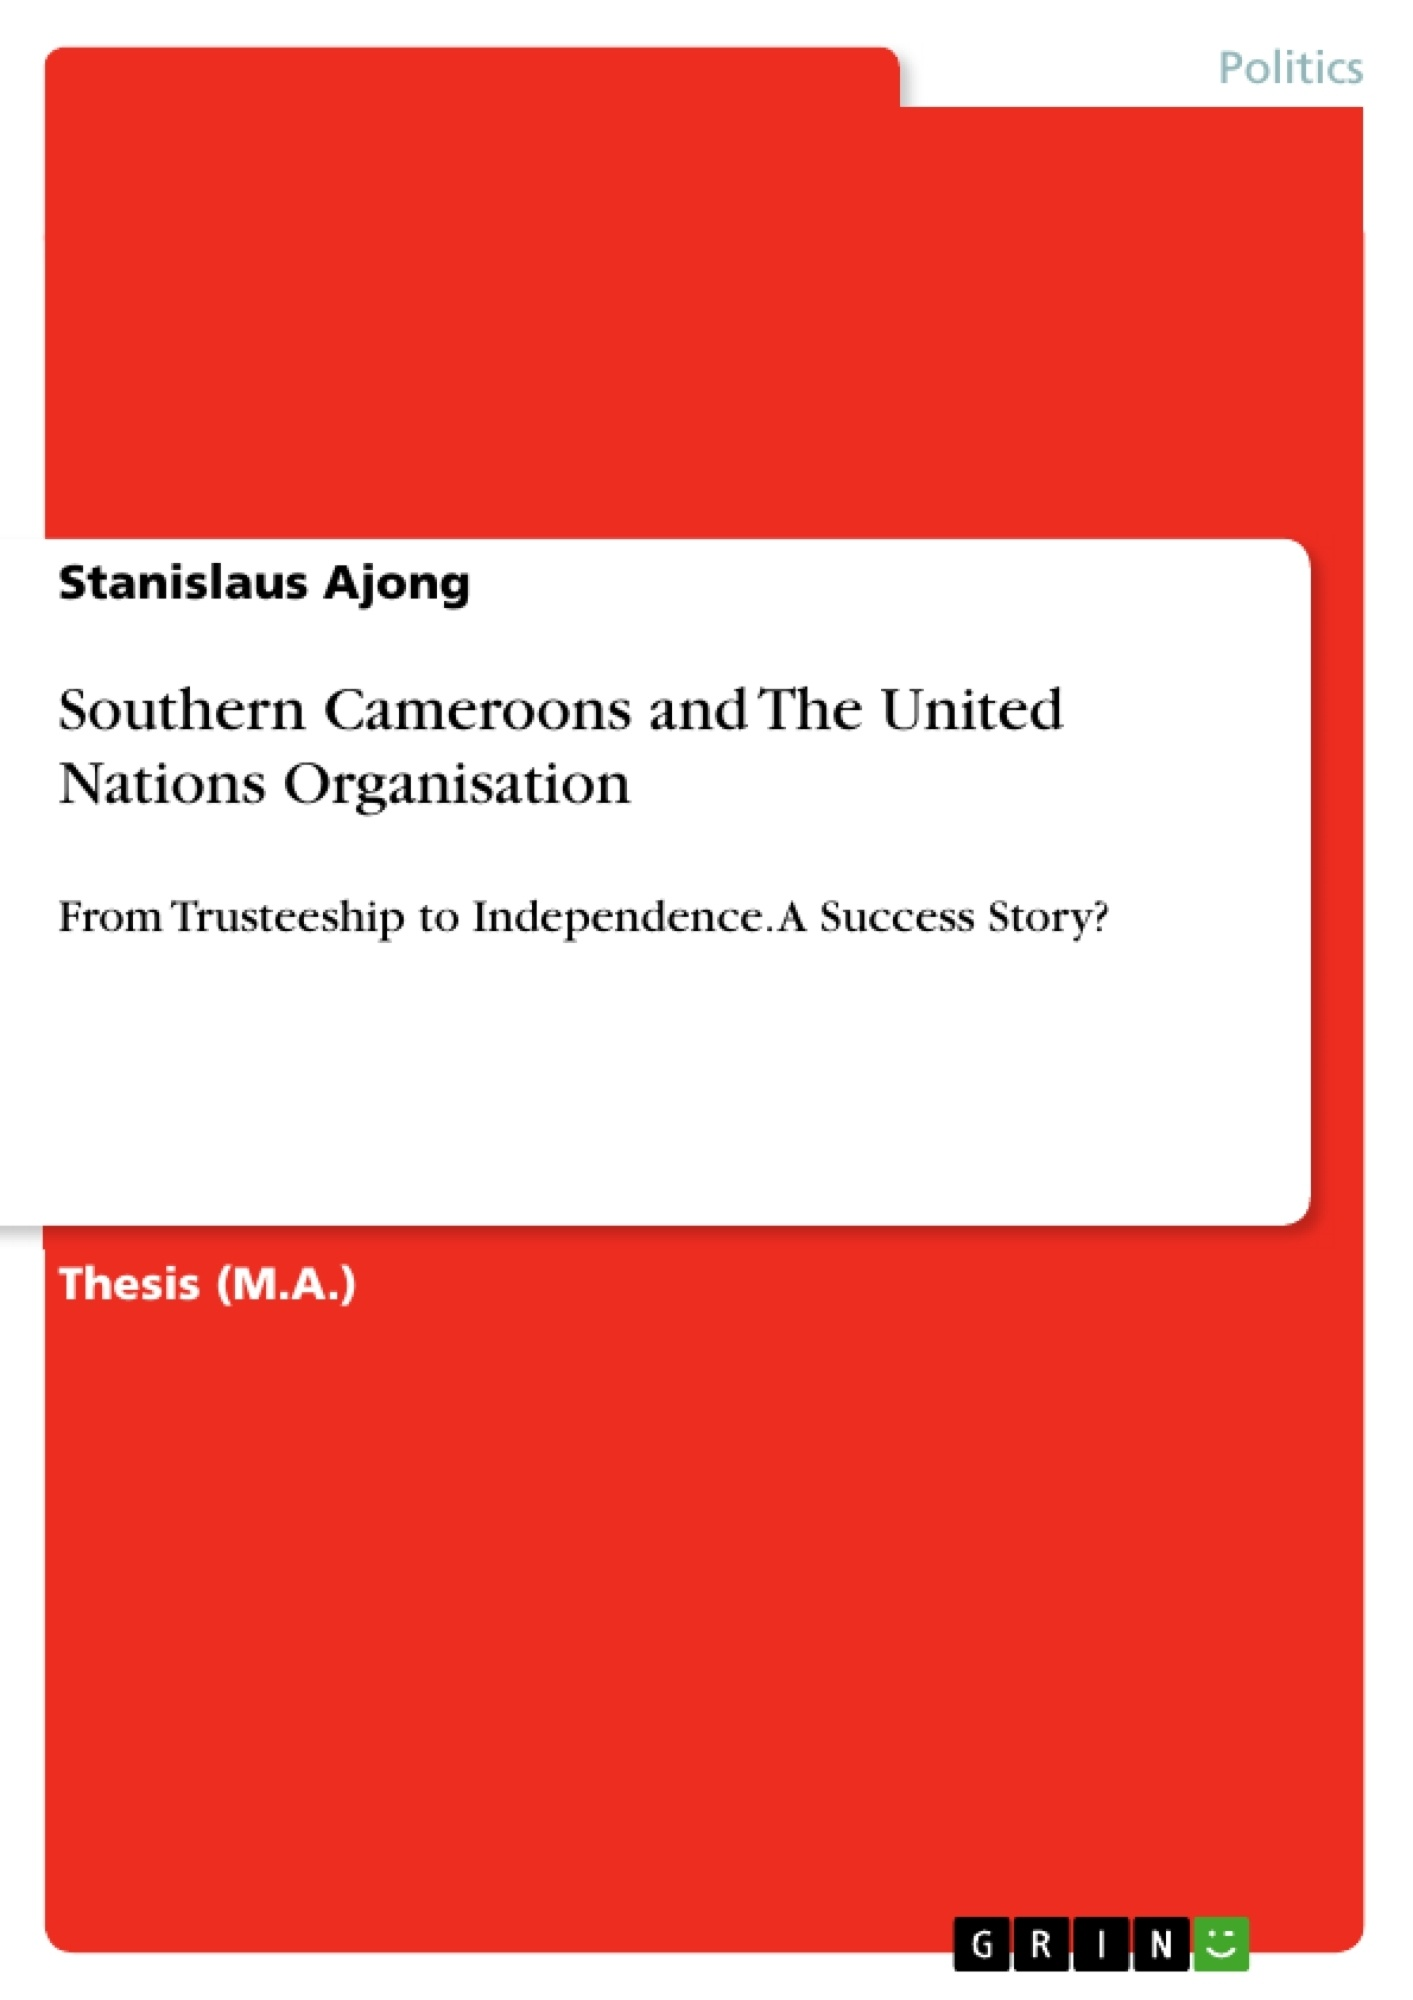 Título: Southern Cameroons and The United Nations Organisation